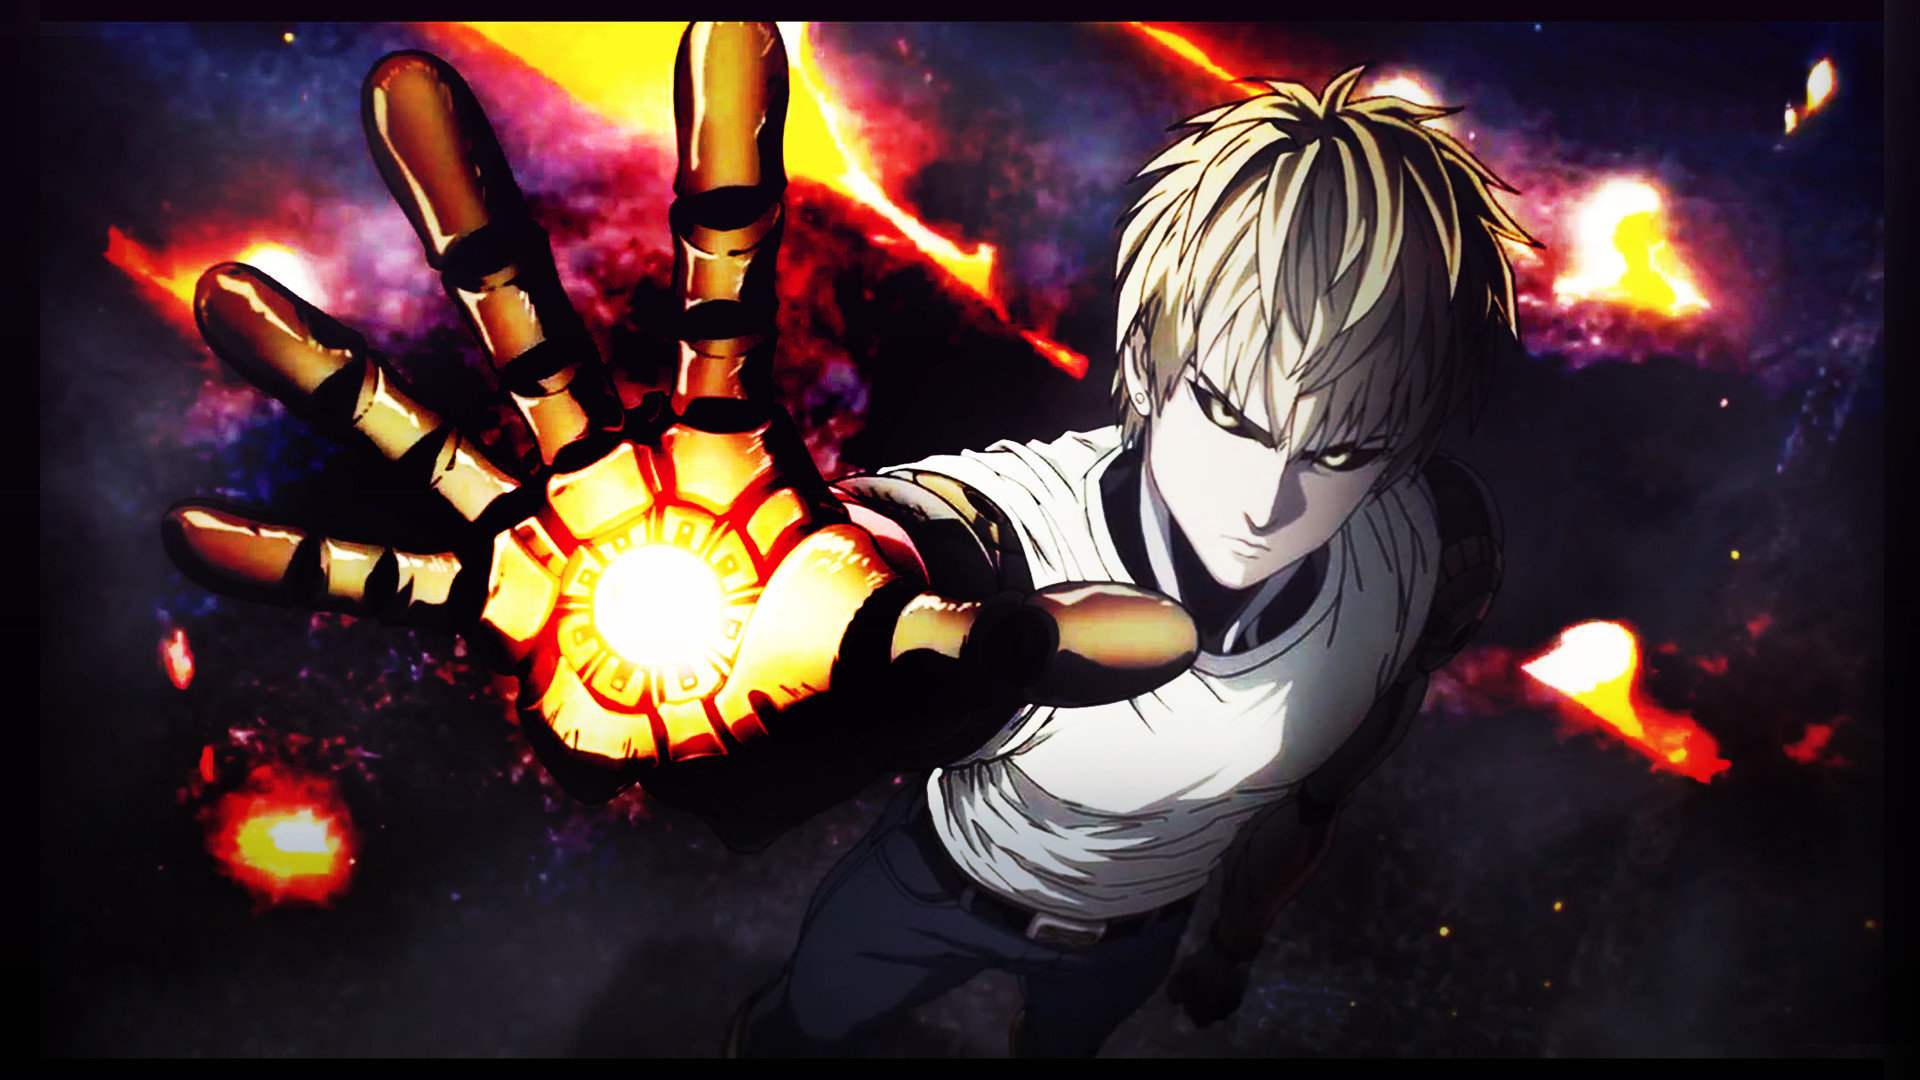 High resolution Genos (One-Punch Man) full hd wallpaper ID:345497 for computer